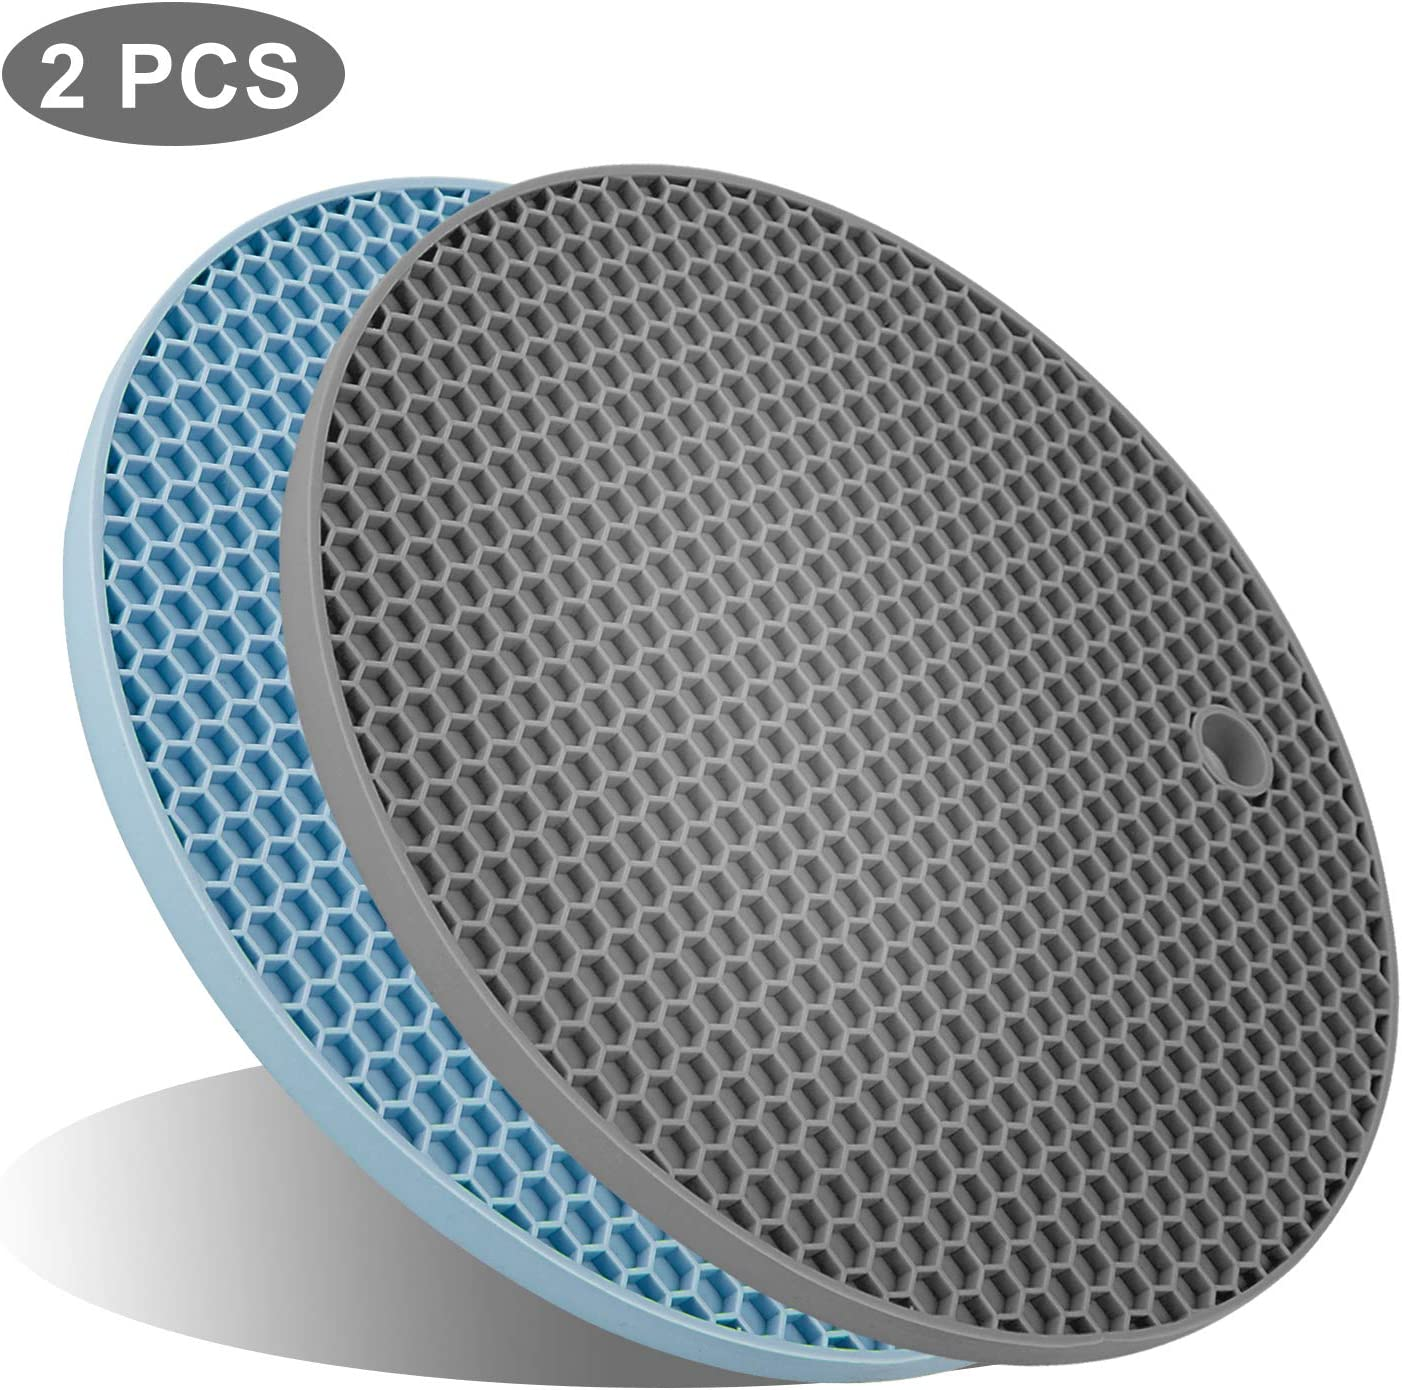 UXUNNY FDA Silicone Pot Holders, Kitchen Heat Resistant Trivets - Honeycomb Coasters & Nonslip Jar Openers, Hot Pot Pads, Hot Table Mat, Place Mats, Oven Mitts for Cooking & Baking (Blue & Gray)